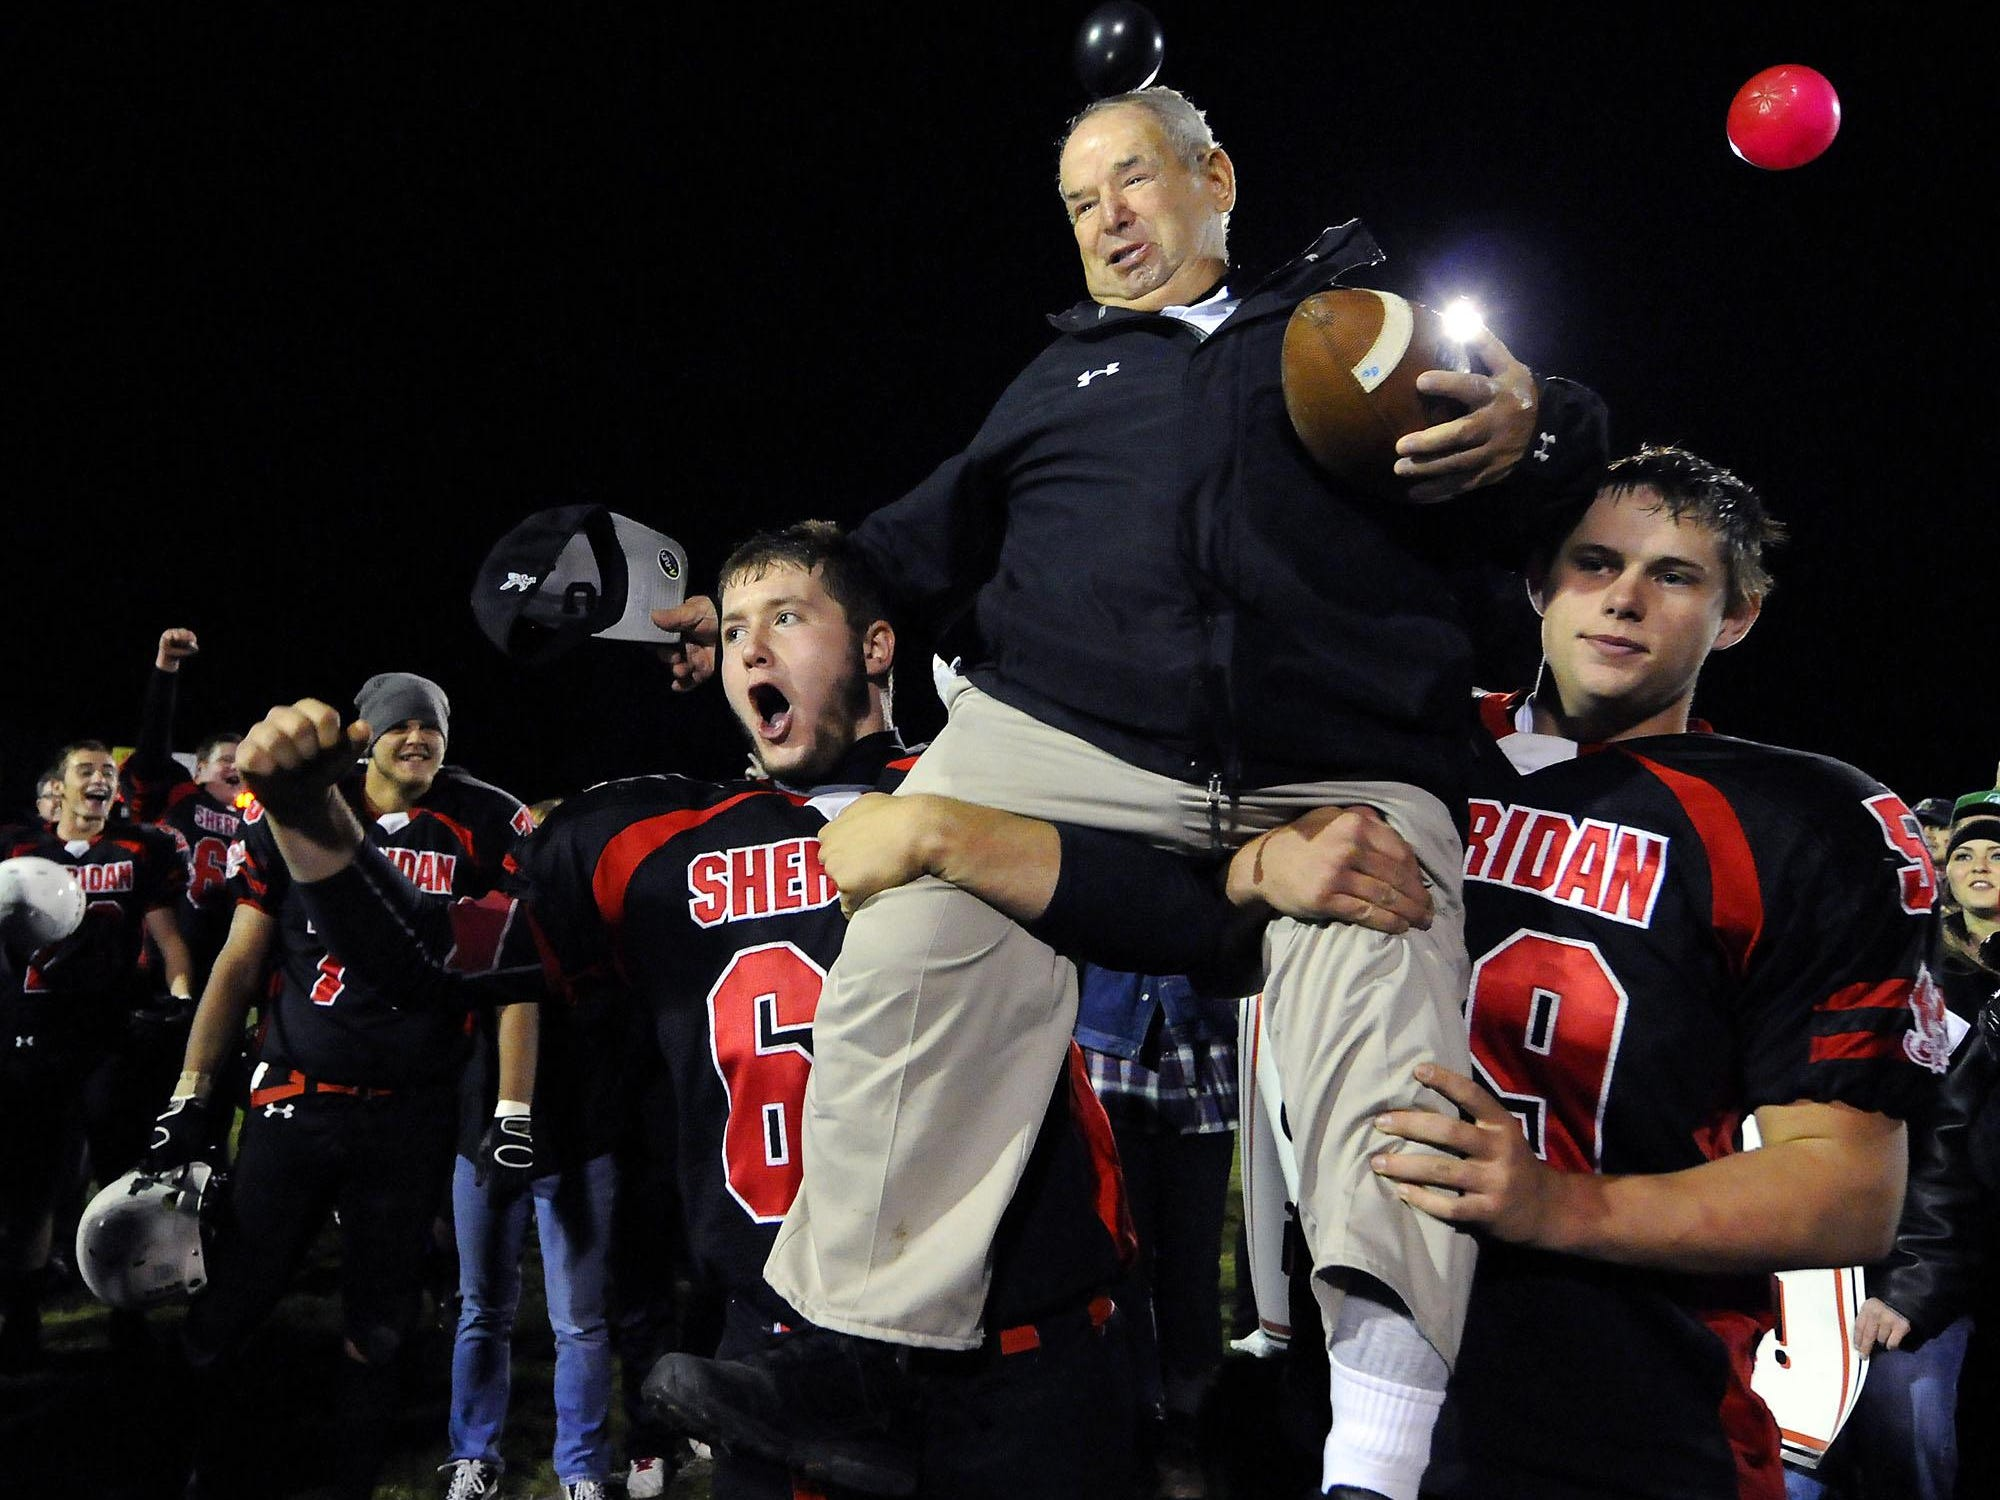 Sheridan players carried Bud Wright off the field after he became Indiana's winningest coach in 2011 with 369 victories. Eight wins with the team this year would bring him to 400 wins.